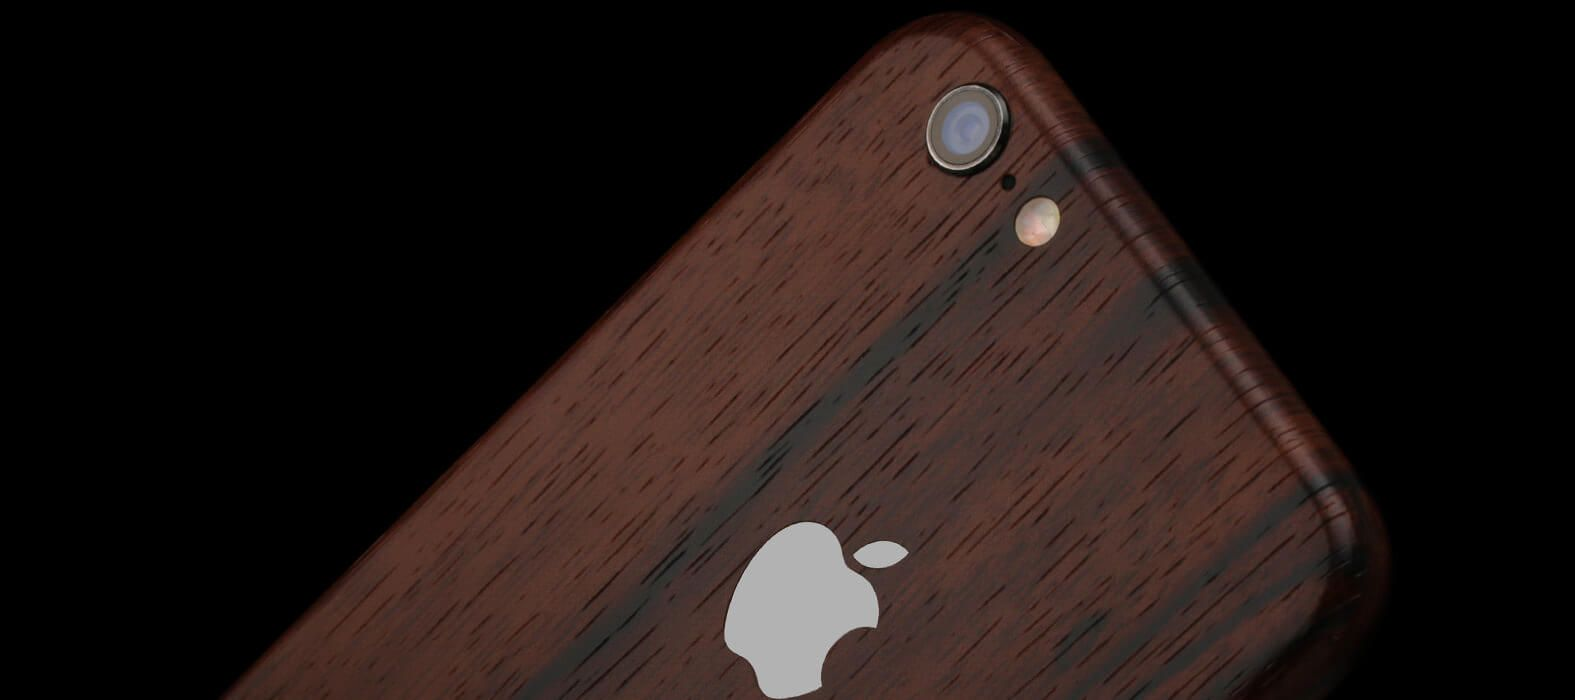 iPhone 6 Plus Skins, Wraps & decals - Ebony Wood